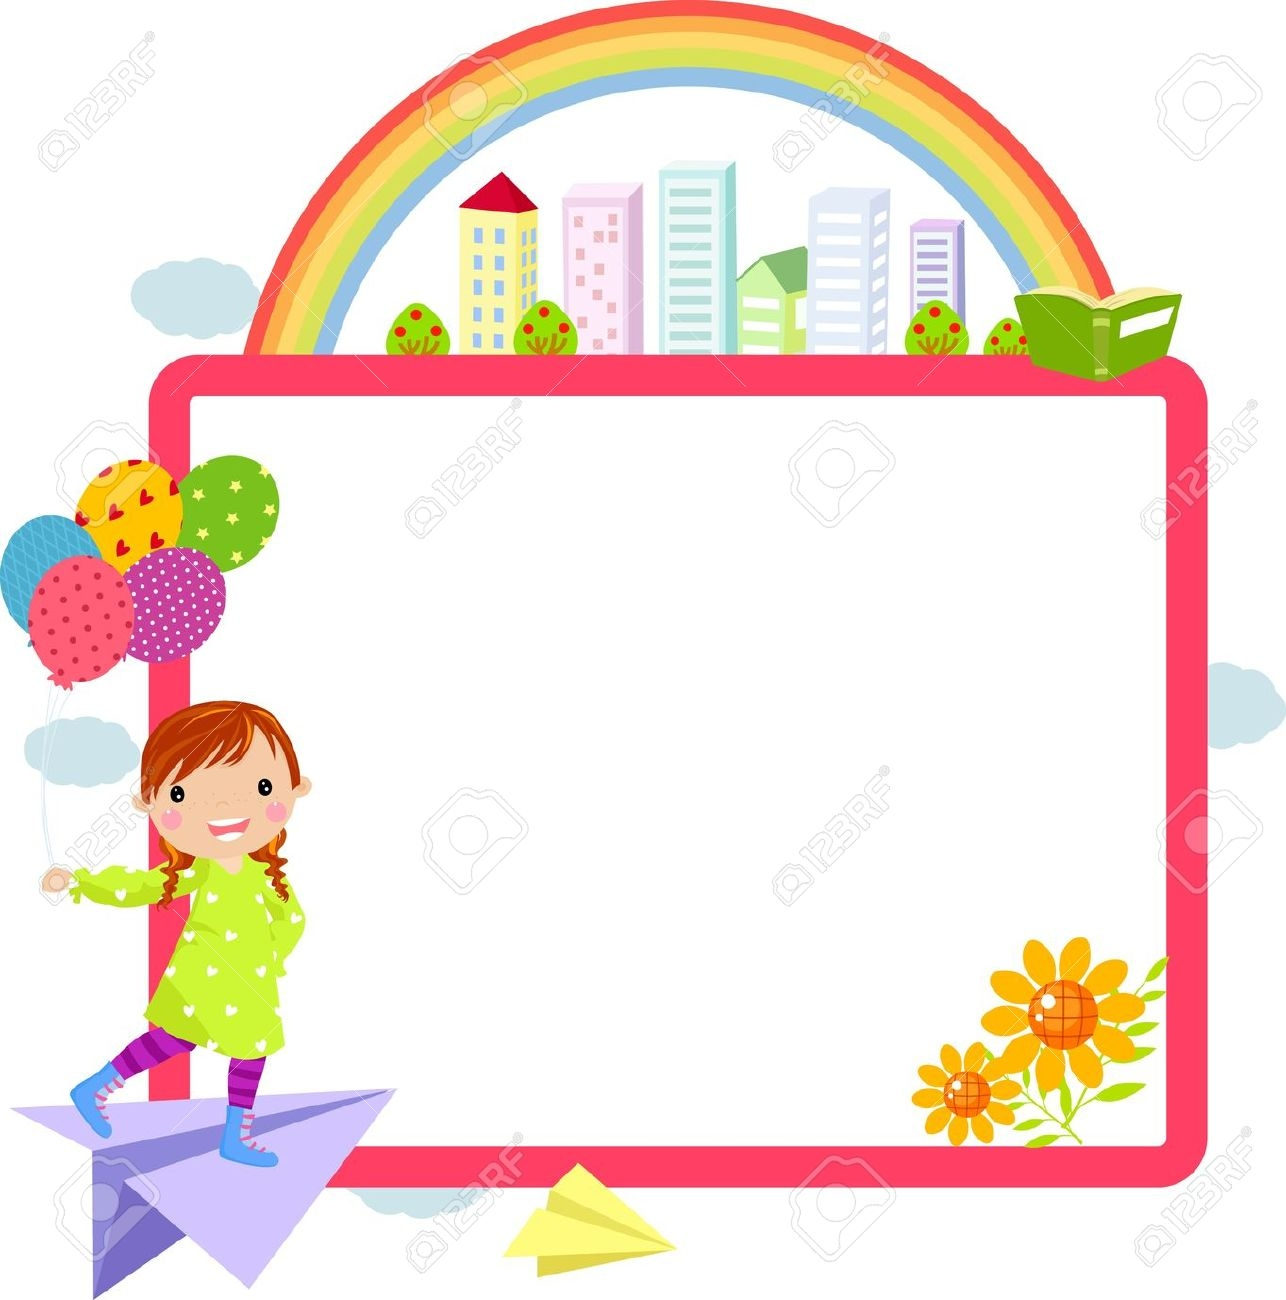 Cute School Clipart Horizontal Border